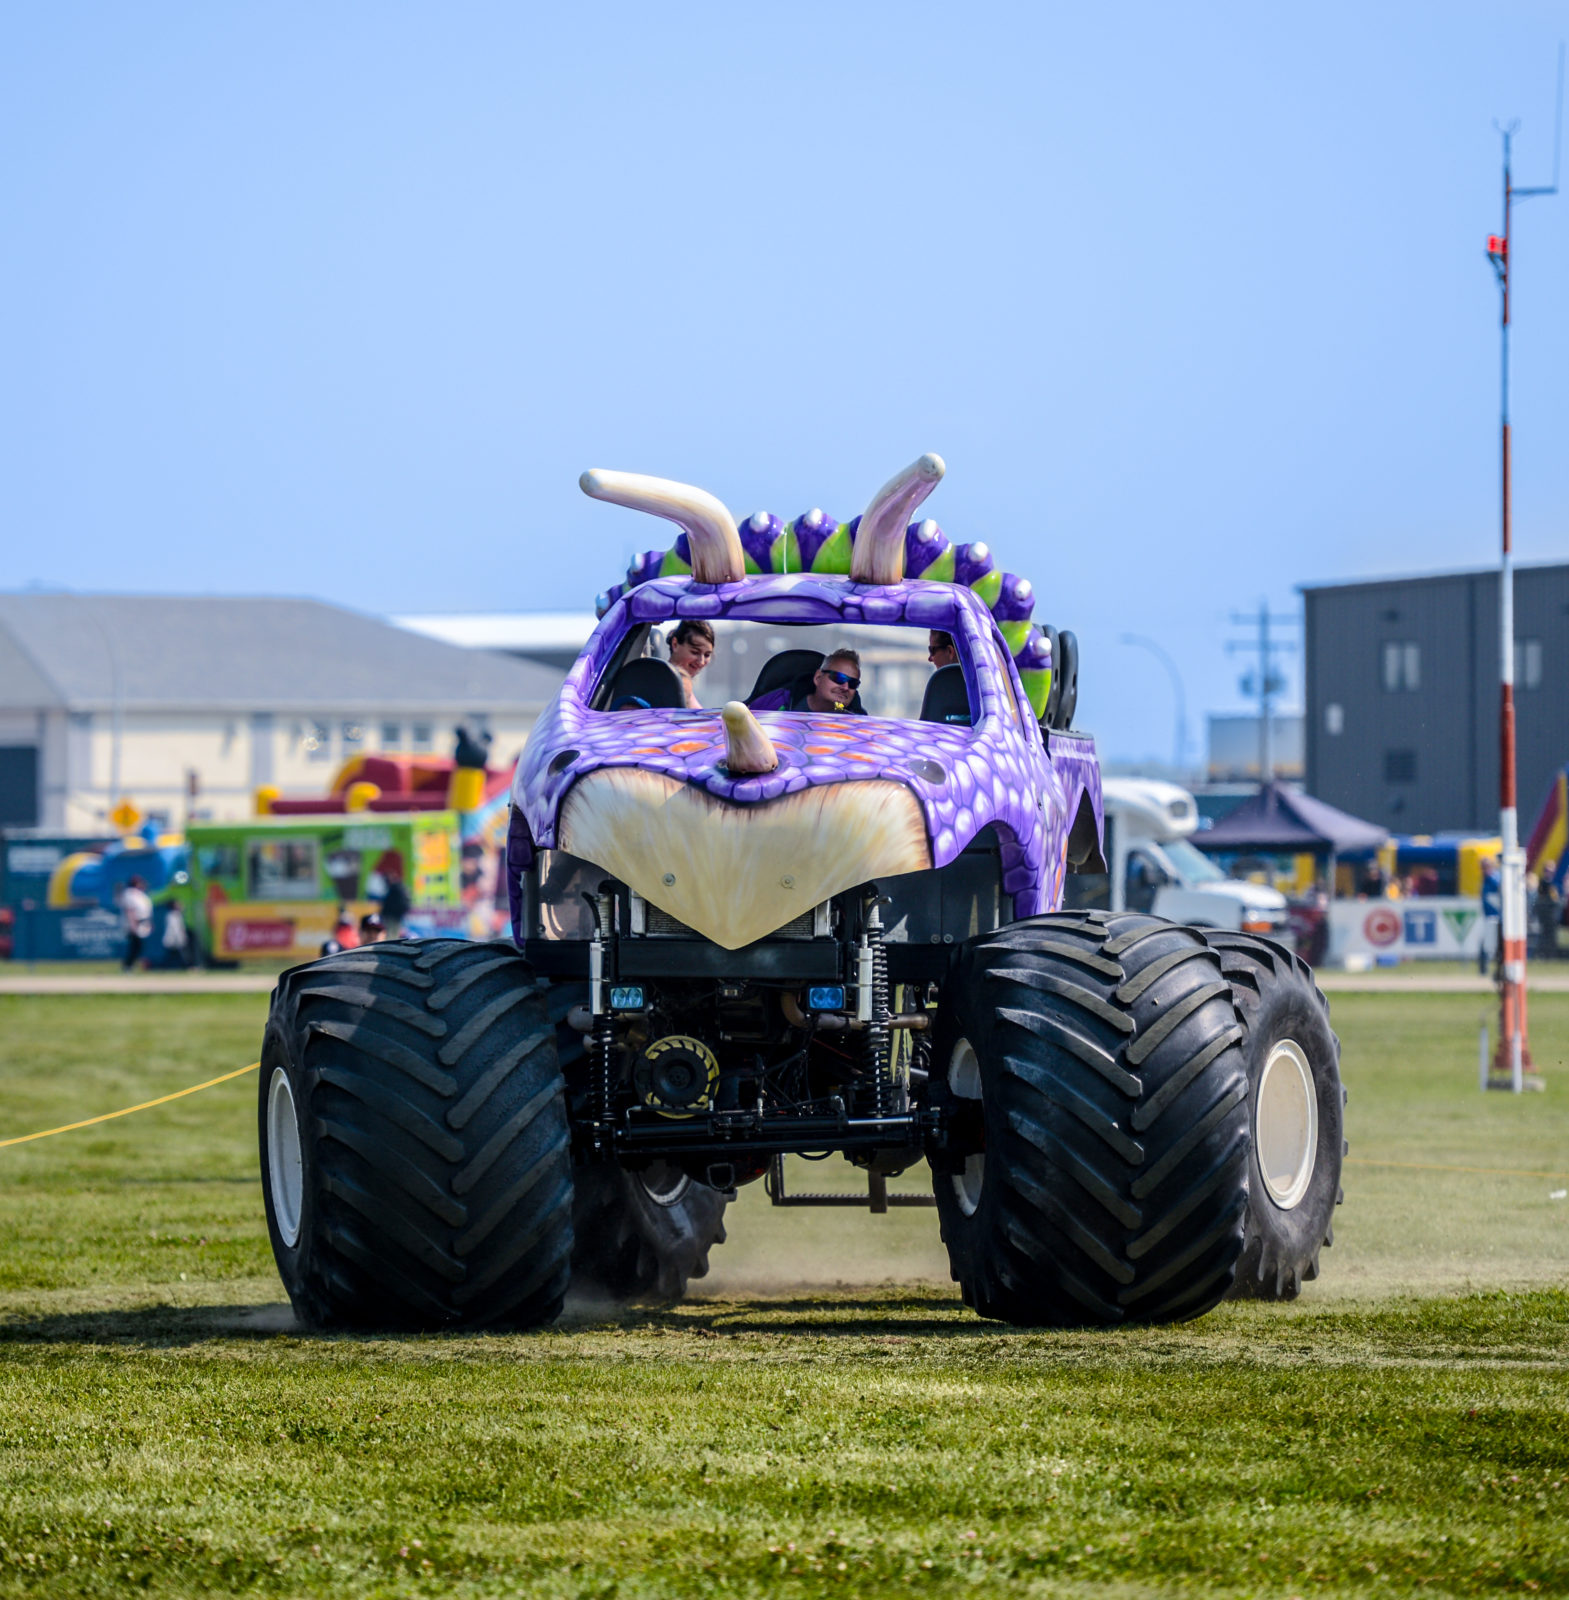 Monster Truck Rides The Edmonton Airshow